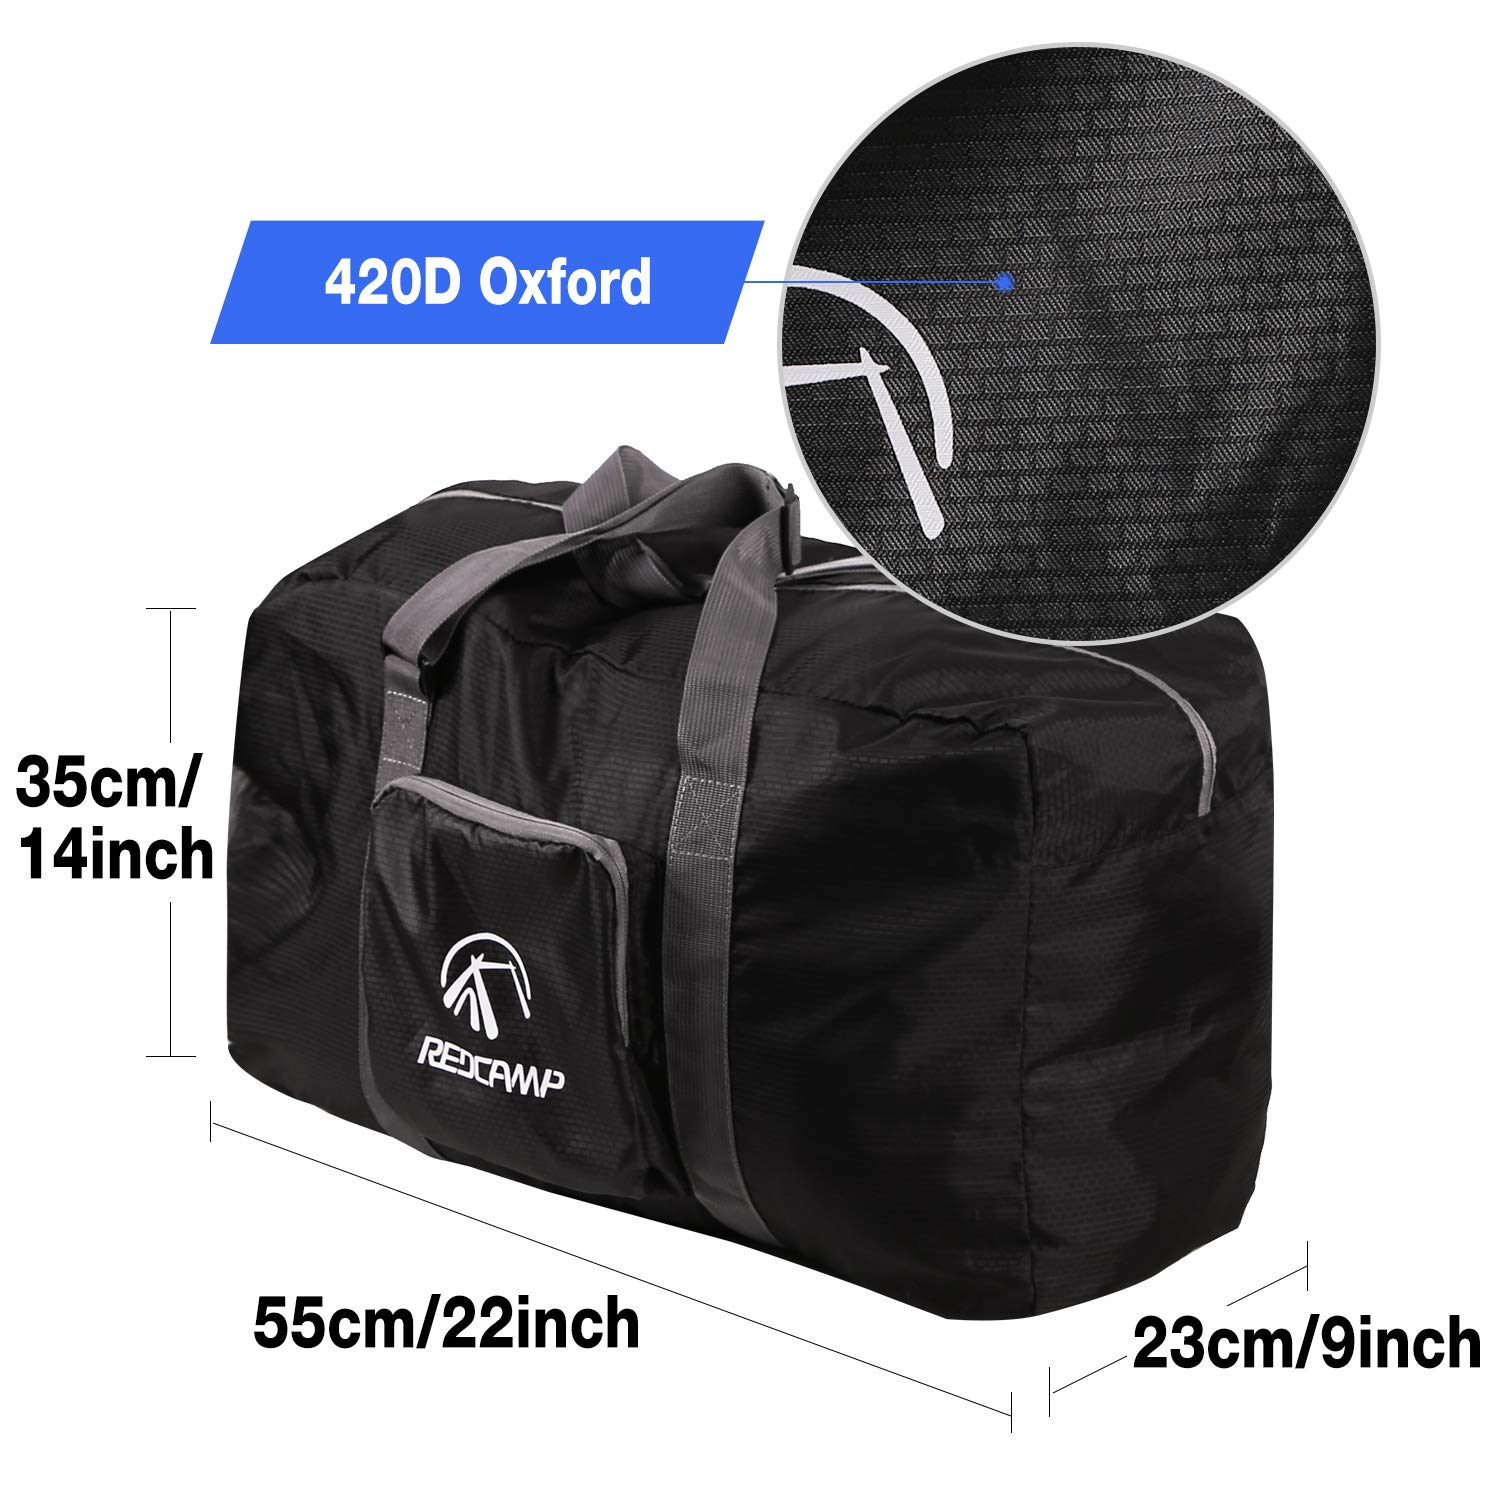 45L//22 Lightweight Travel Duffel Bag Carry On Size for Airplanes Gym Sports REDCAMP Foldable Small Duffle Bag with Shoe Compartment Black